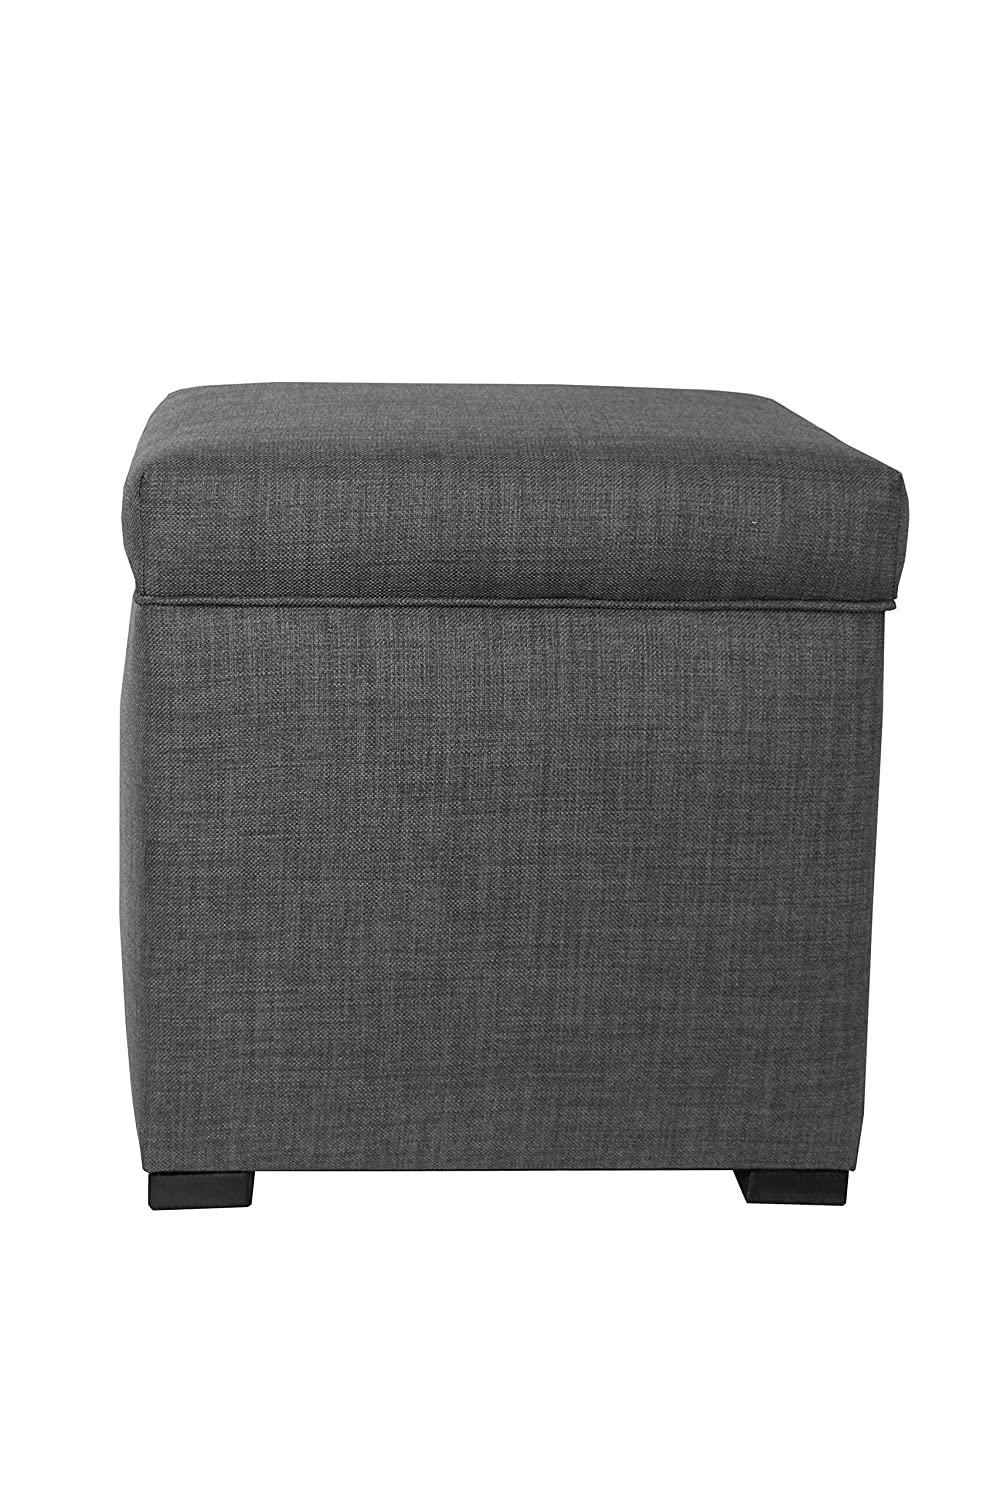 MJL Furniture Designs Tami Collection Fabric Upholstered Lift Top Cube Storage Ottoman HJM100 Series Dark Gray TAMI-HJM100-3 Ottoman Foot Rest